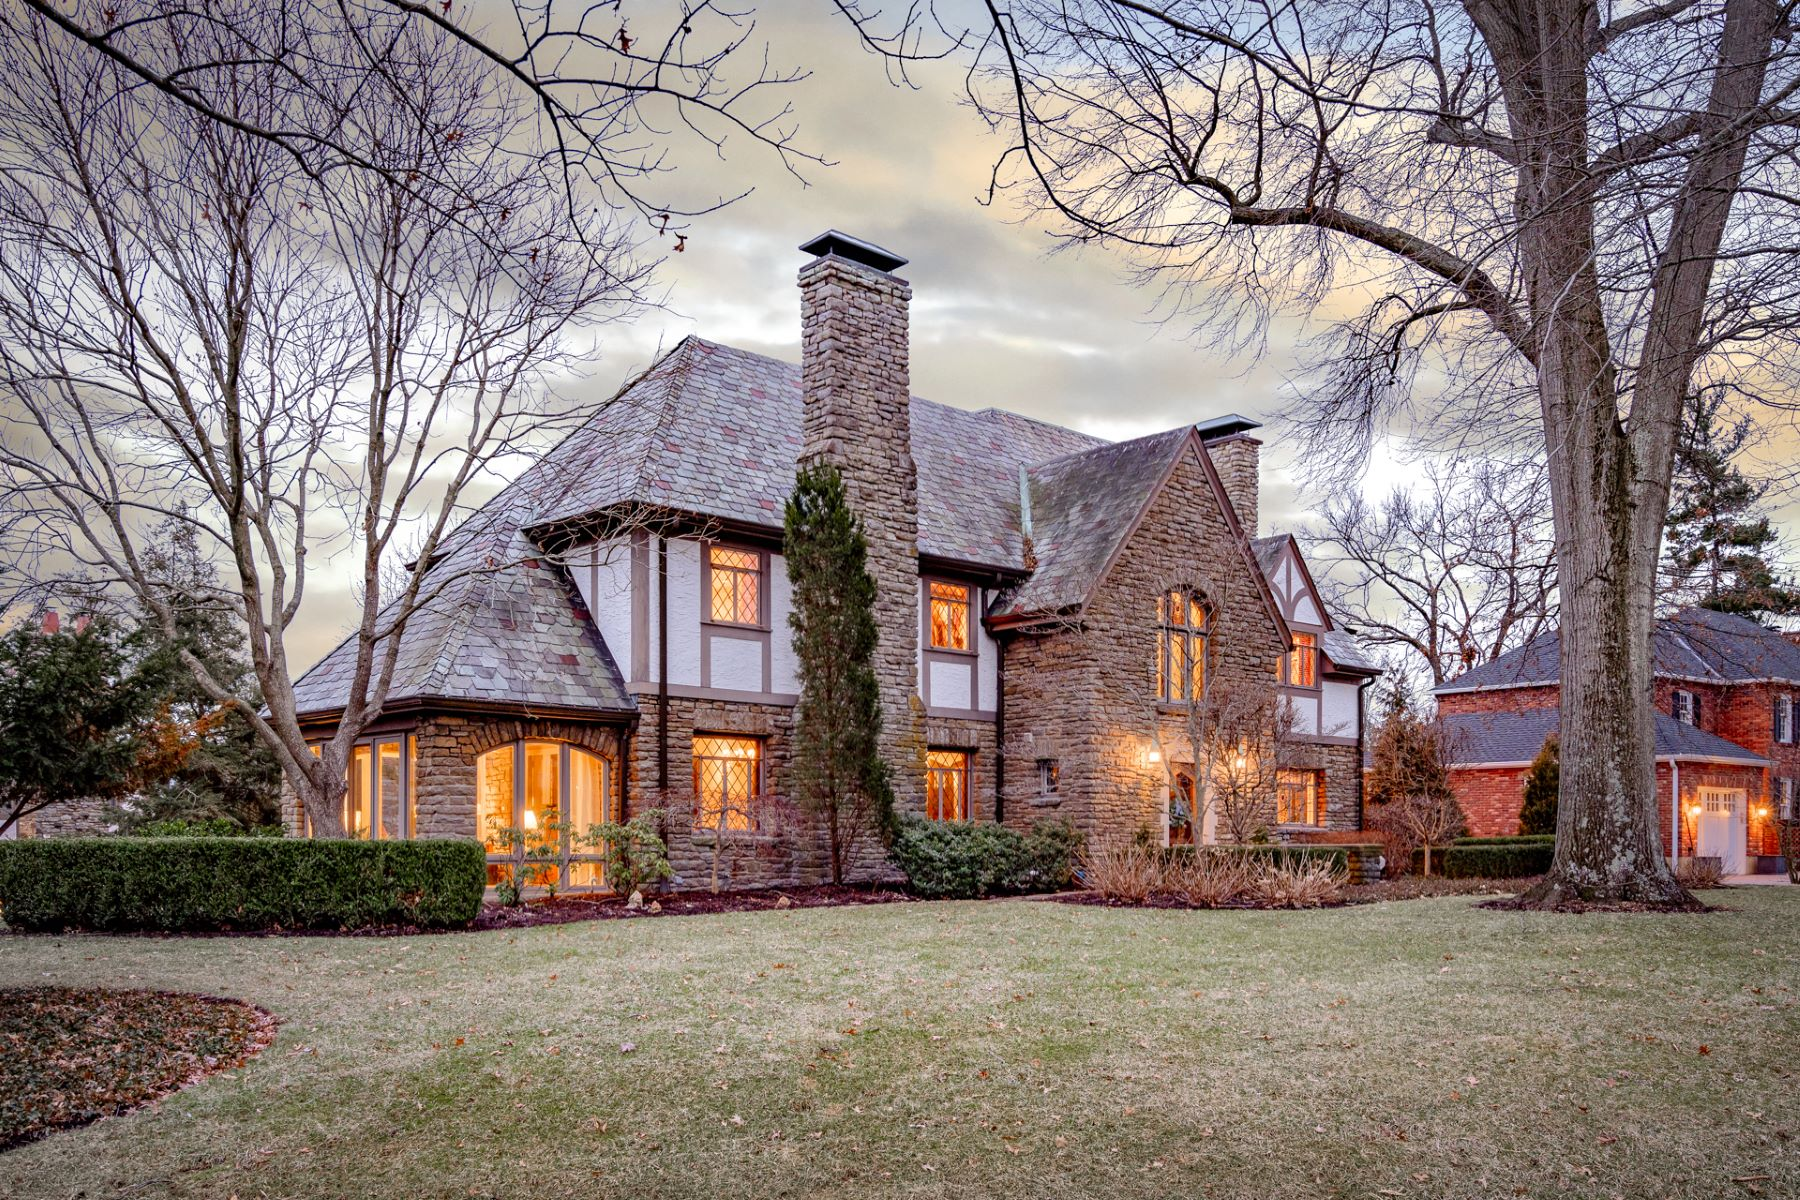 Single Family Homes for Sale at The charm and character of a Tudor with the benefits of a smart home 1120 East Rookwood Drive Cincinnati, Ohio 45208 United States